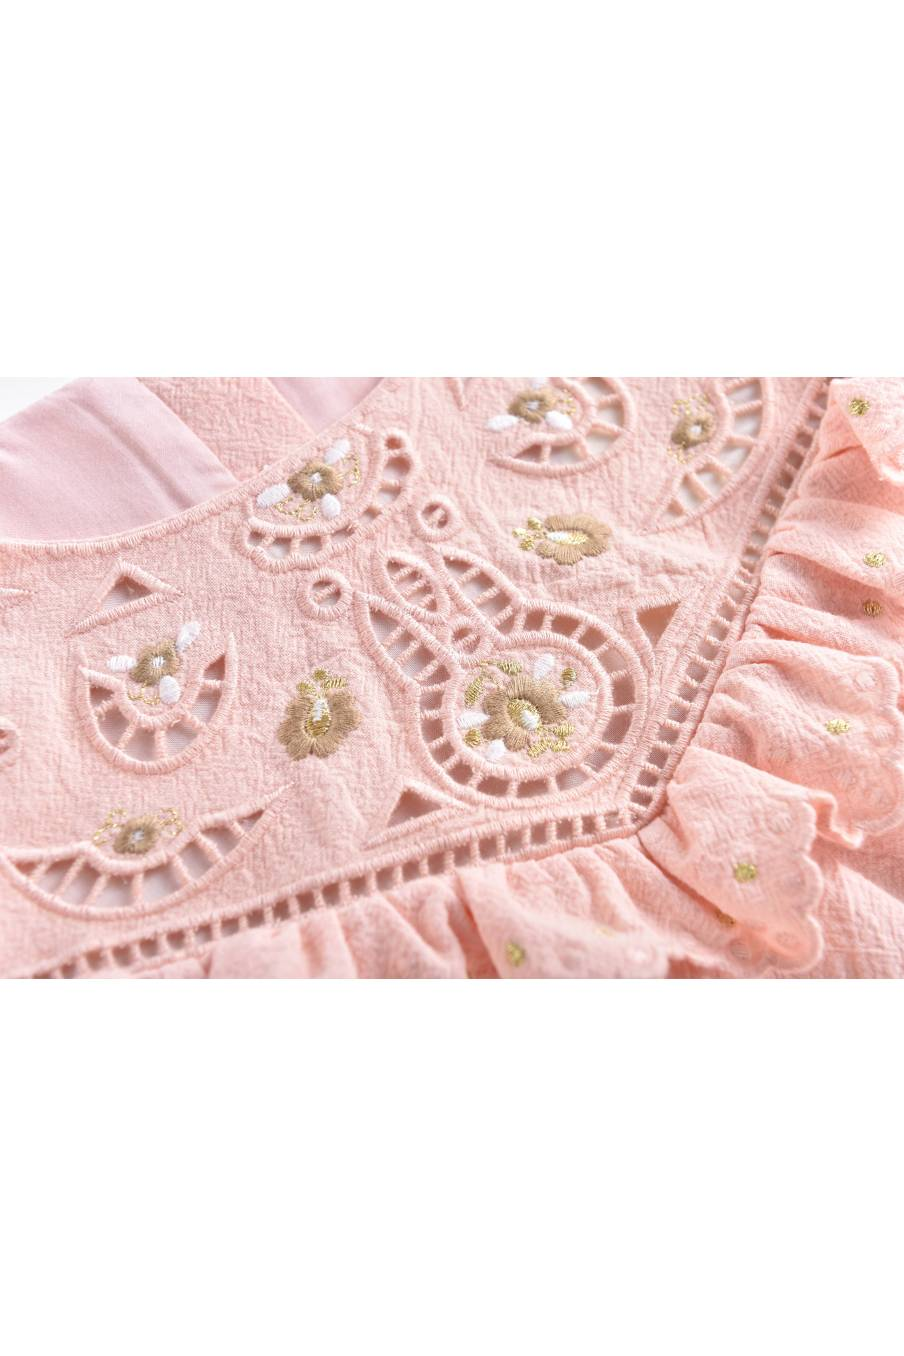 boheme chic vintage blouse bébé fille jacota blush